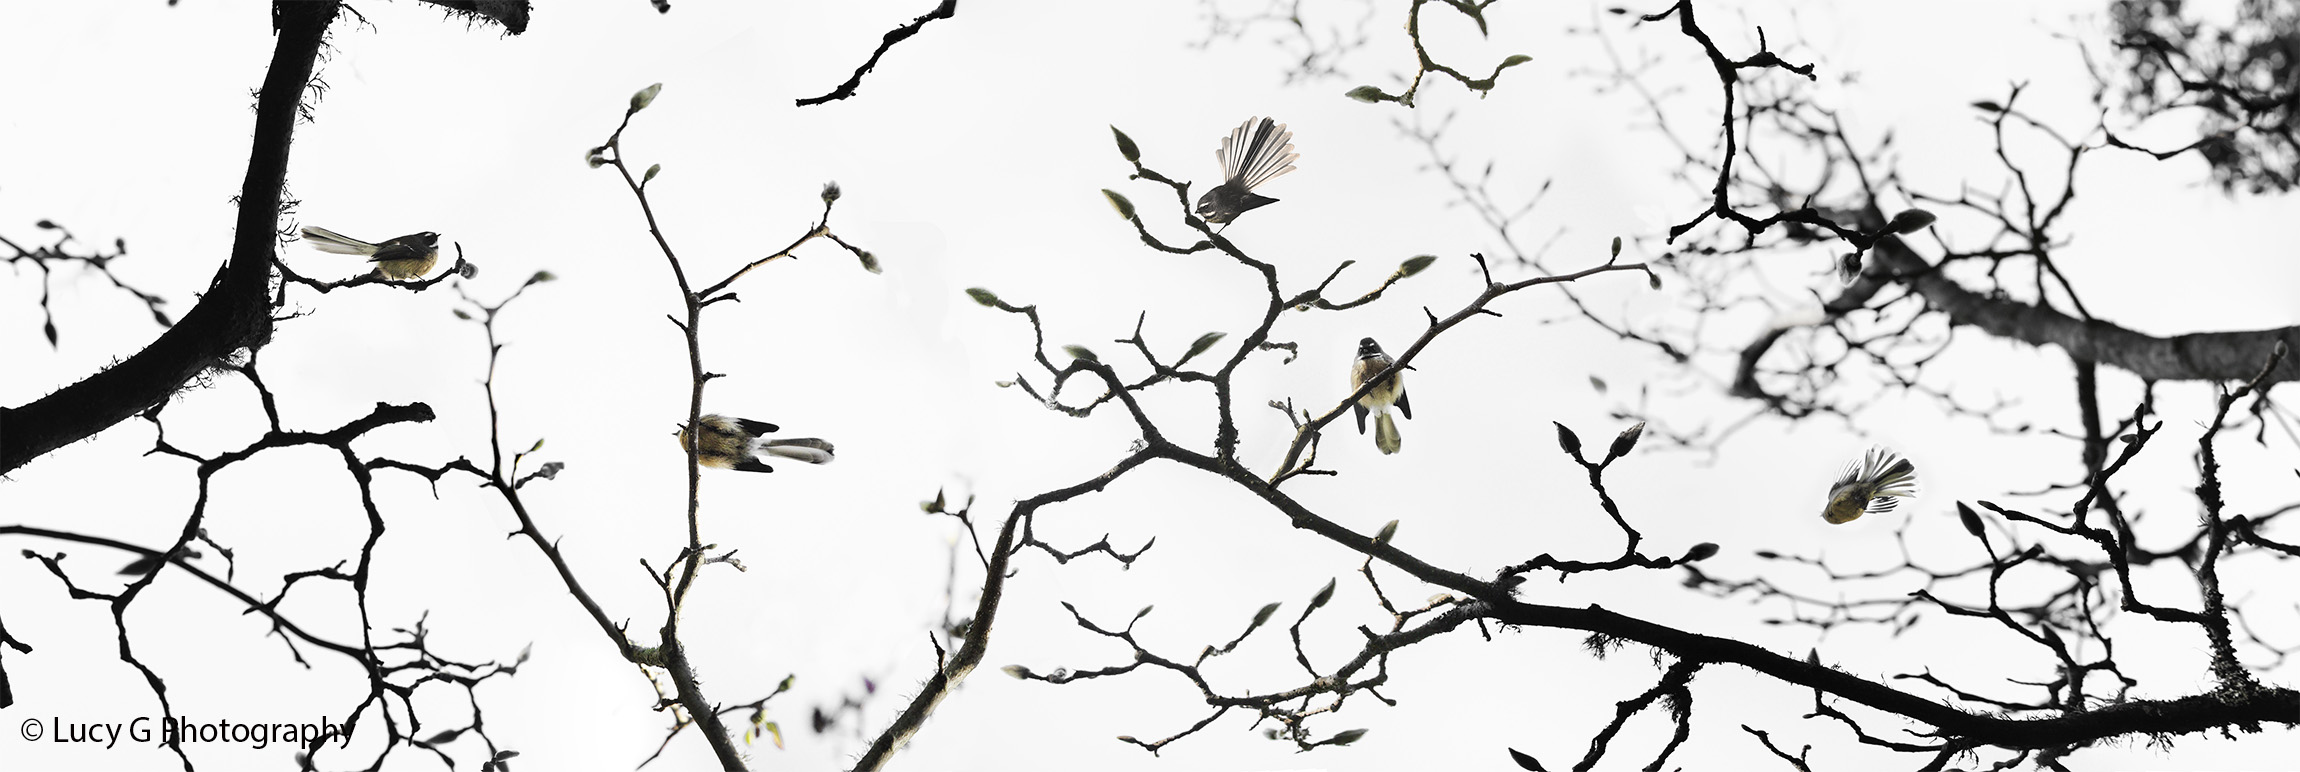 NAT 2015-2 Fantail on Blossoms (b/w background)